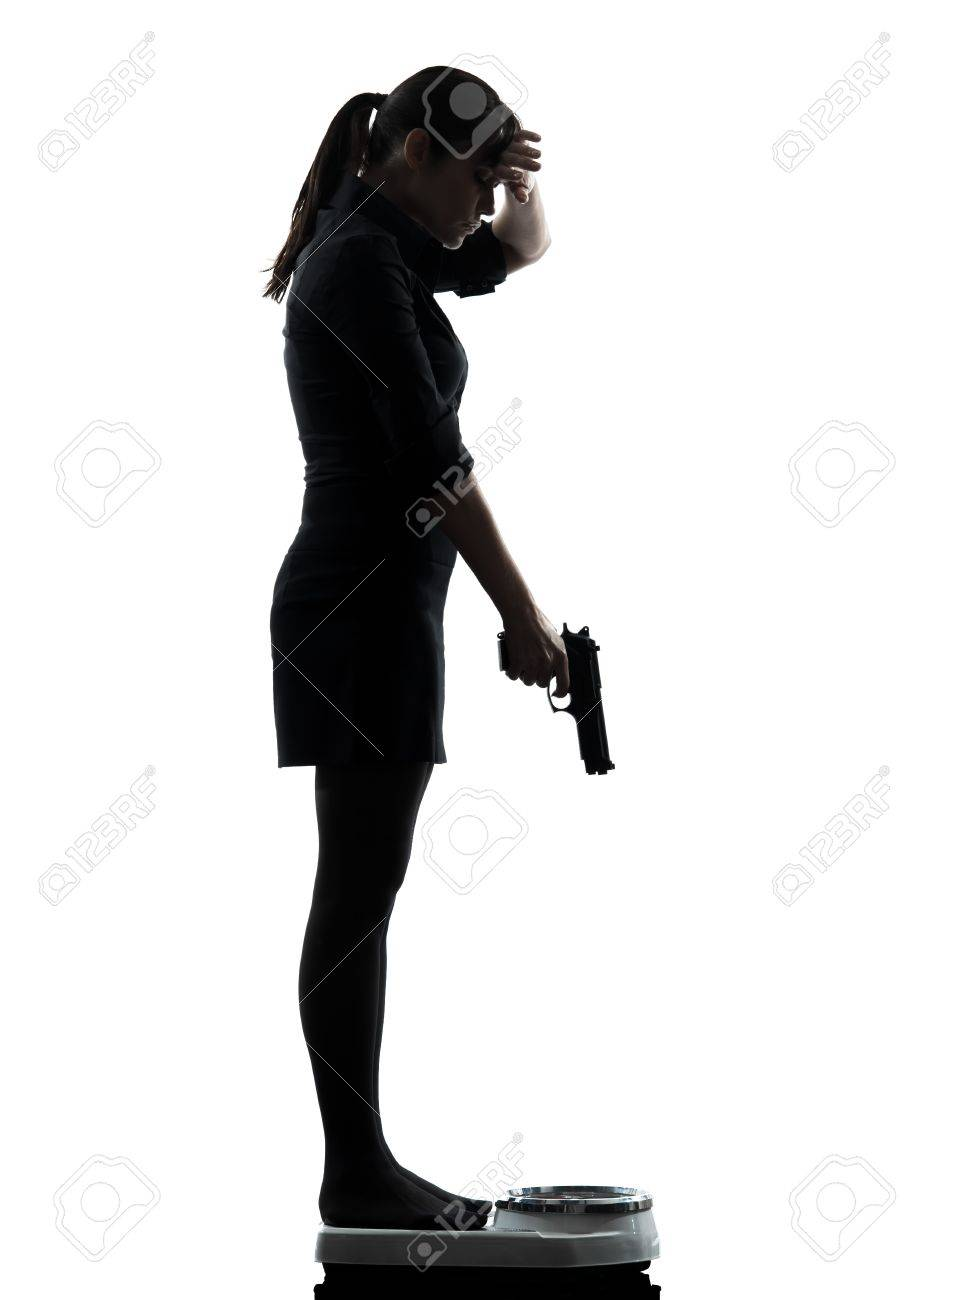 one woman standing on weight scale despair aiming gun silhouette studio isolated on white background Stock Photo - 18838099